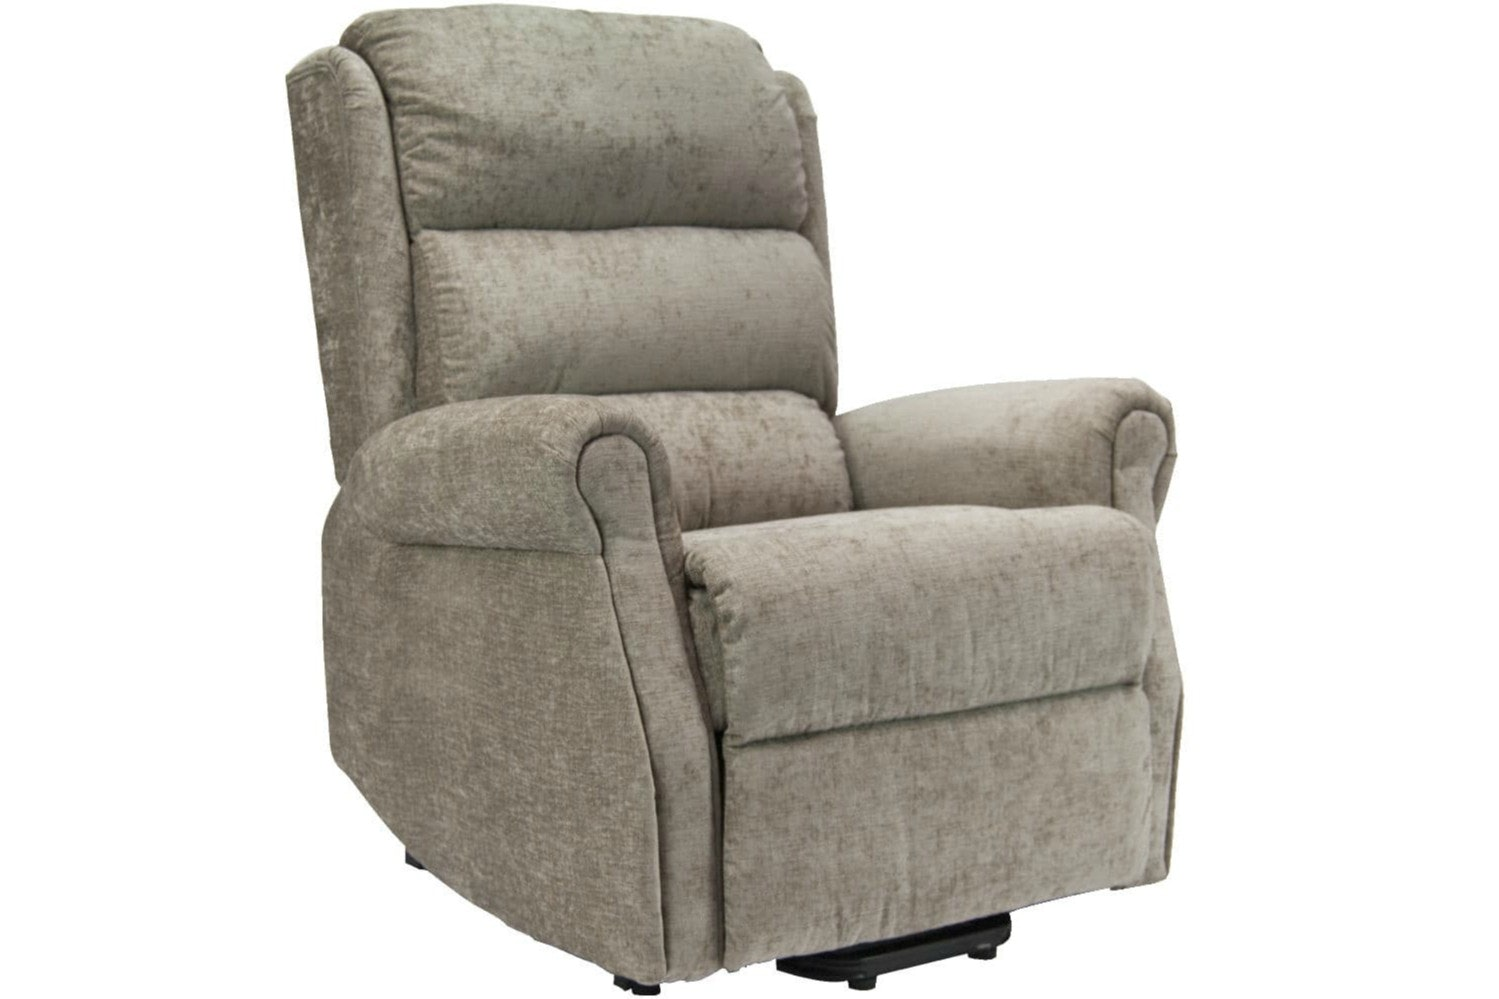 Hudson Recliner Chair Mink